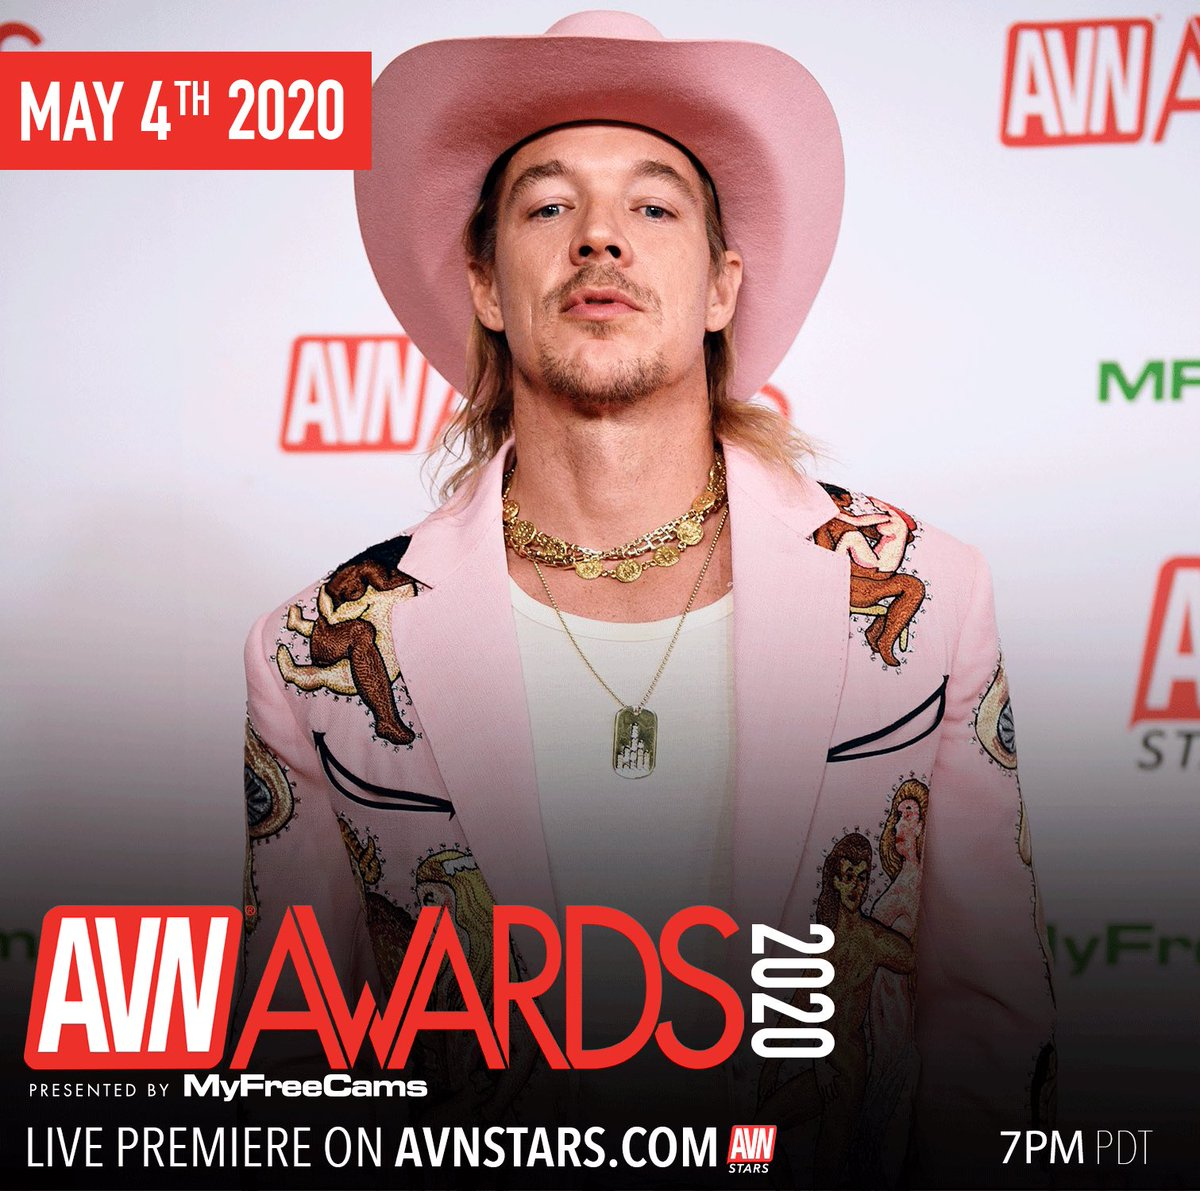 Our favorite cowboy @diplo rocked the red carpet and the stage at the #AVNAwards. Be sure to watch tonight on Stars.avn.com/AVNAwards